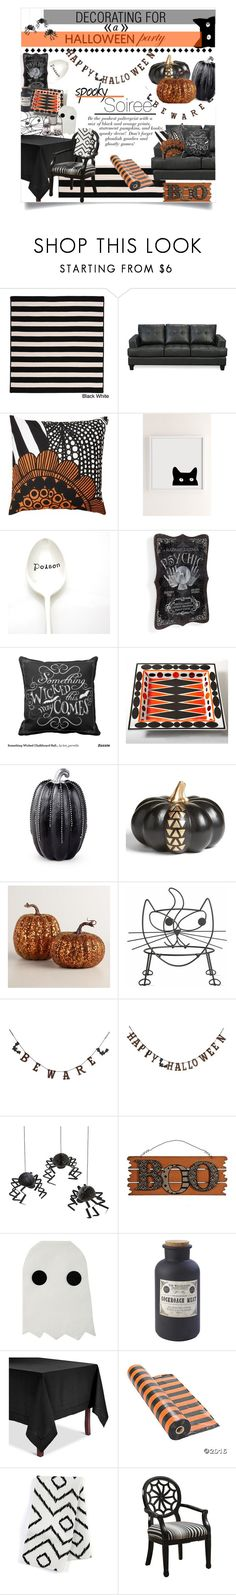 Something Wicked This Way Comes by sierrrrrra on Polyvore featuring interior, interiors, interior design, home, home decor, interior decorating, Coaster, Powell Furniture, Colonial Mills and Meri Meri